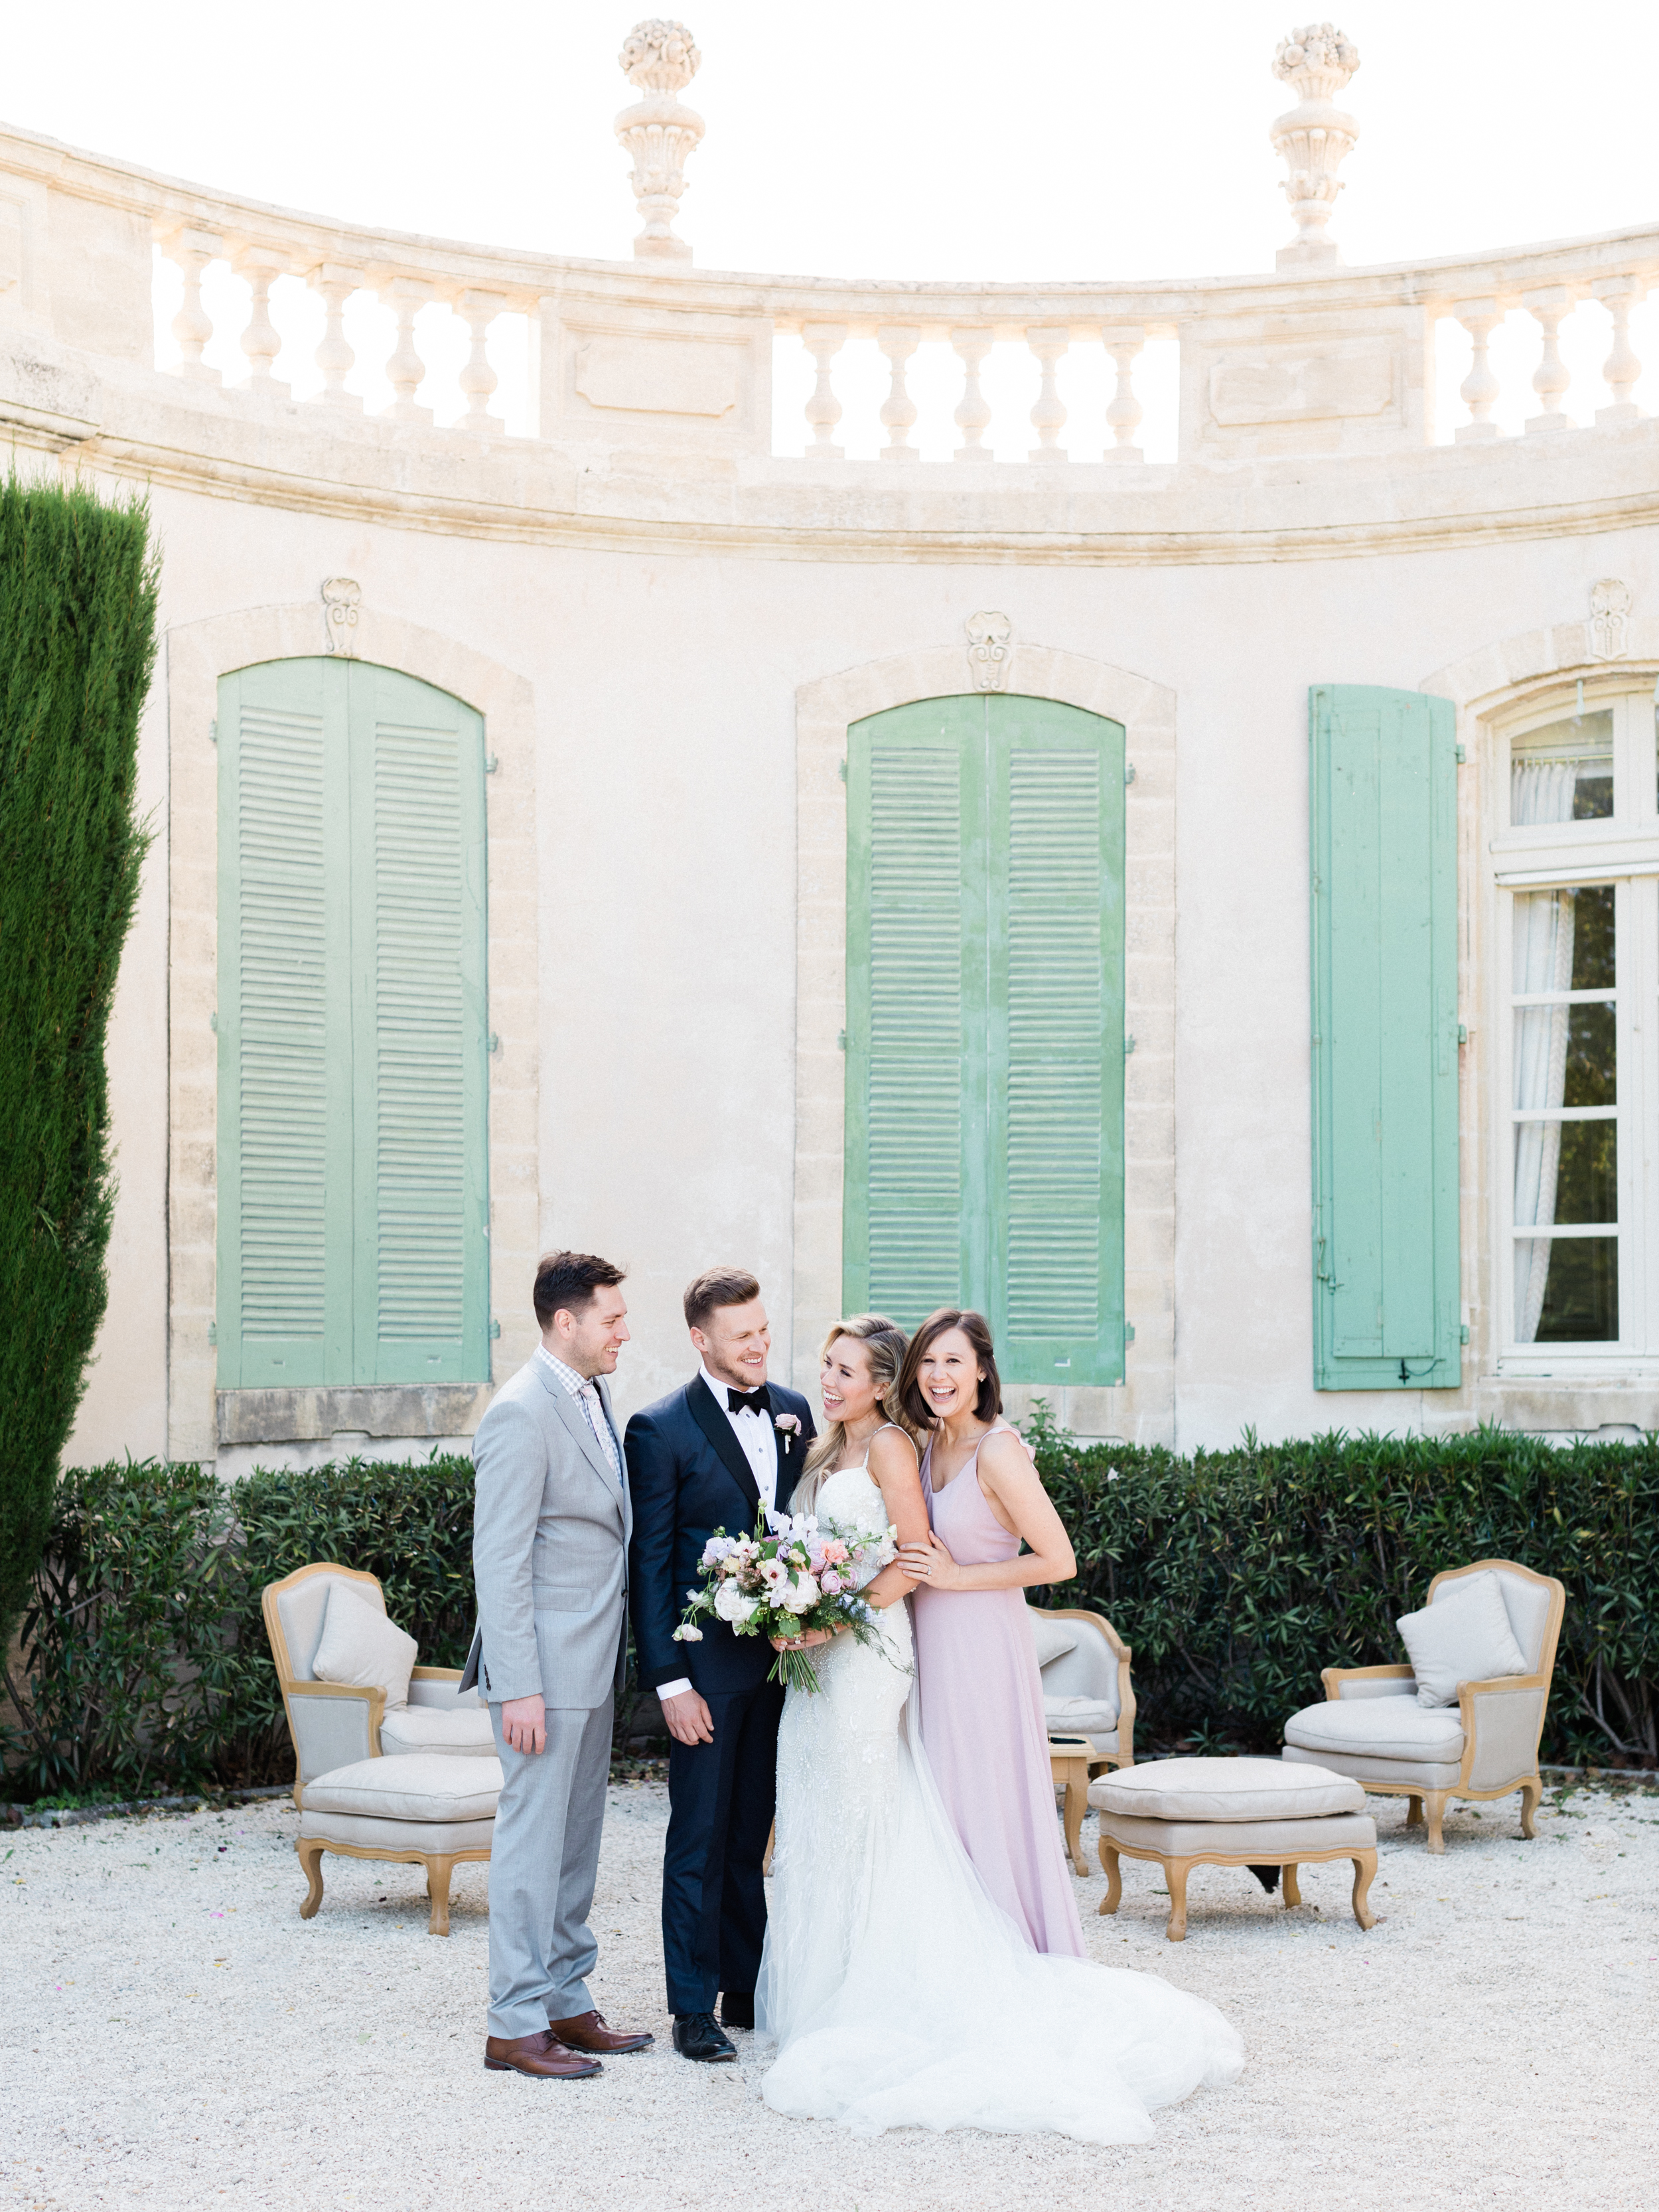 chateau_de_tourreau_provence_wedding_(c)_rory_wylie-39.jpg